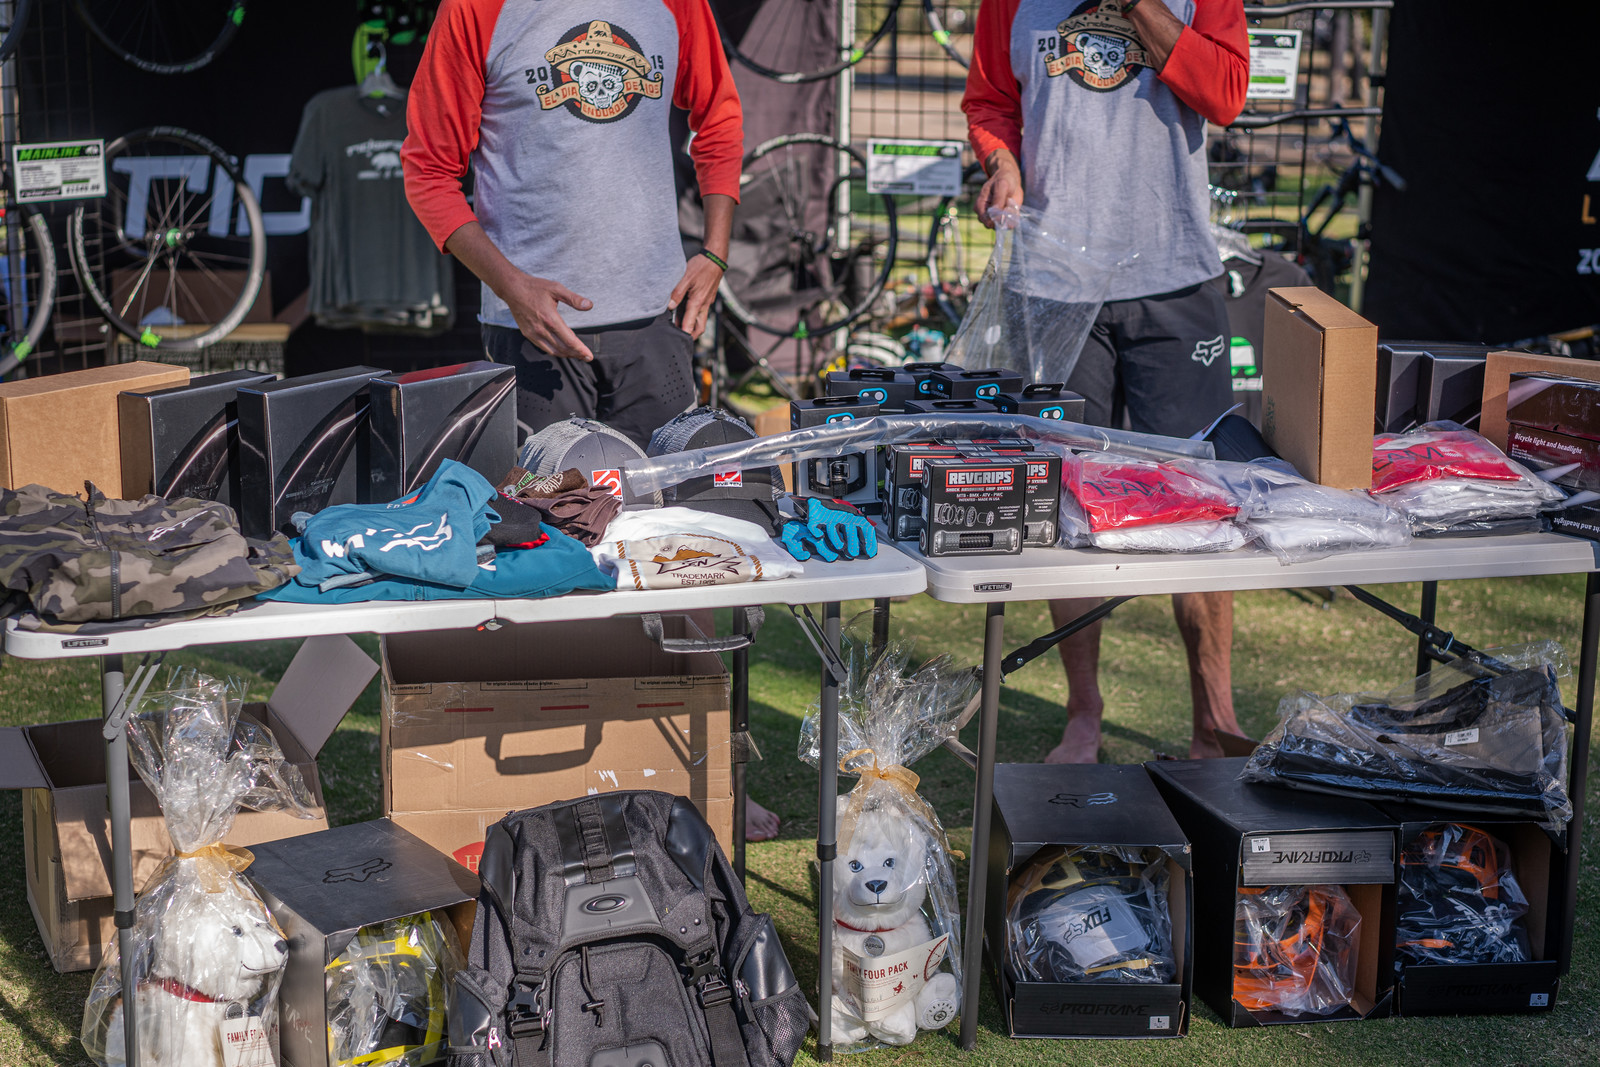 Showing off the 2019 Dia De Enduros shirt and the Raffle Table which included products from Crankbrothers, Five Ten, Rev Grips, Troy Lee Designs, Zodiac Lights, Hoppy Trails, Fox, Vital MTB, SkyPark, Oakley, Shimano, SDG Components, Fix Manufacturing, and RideFast Racing